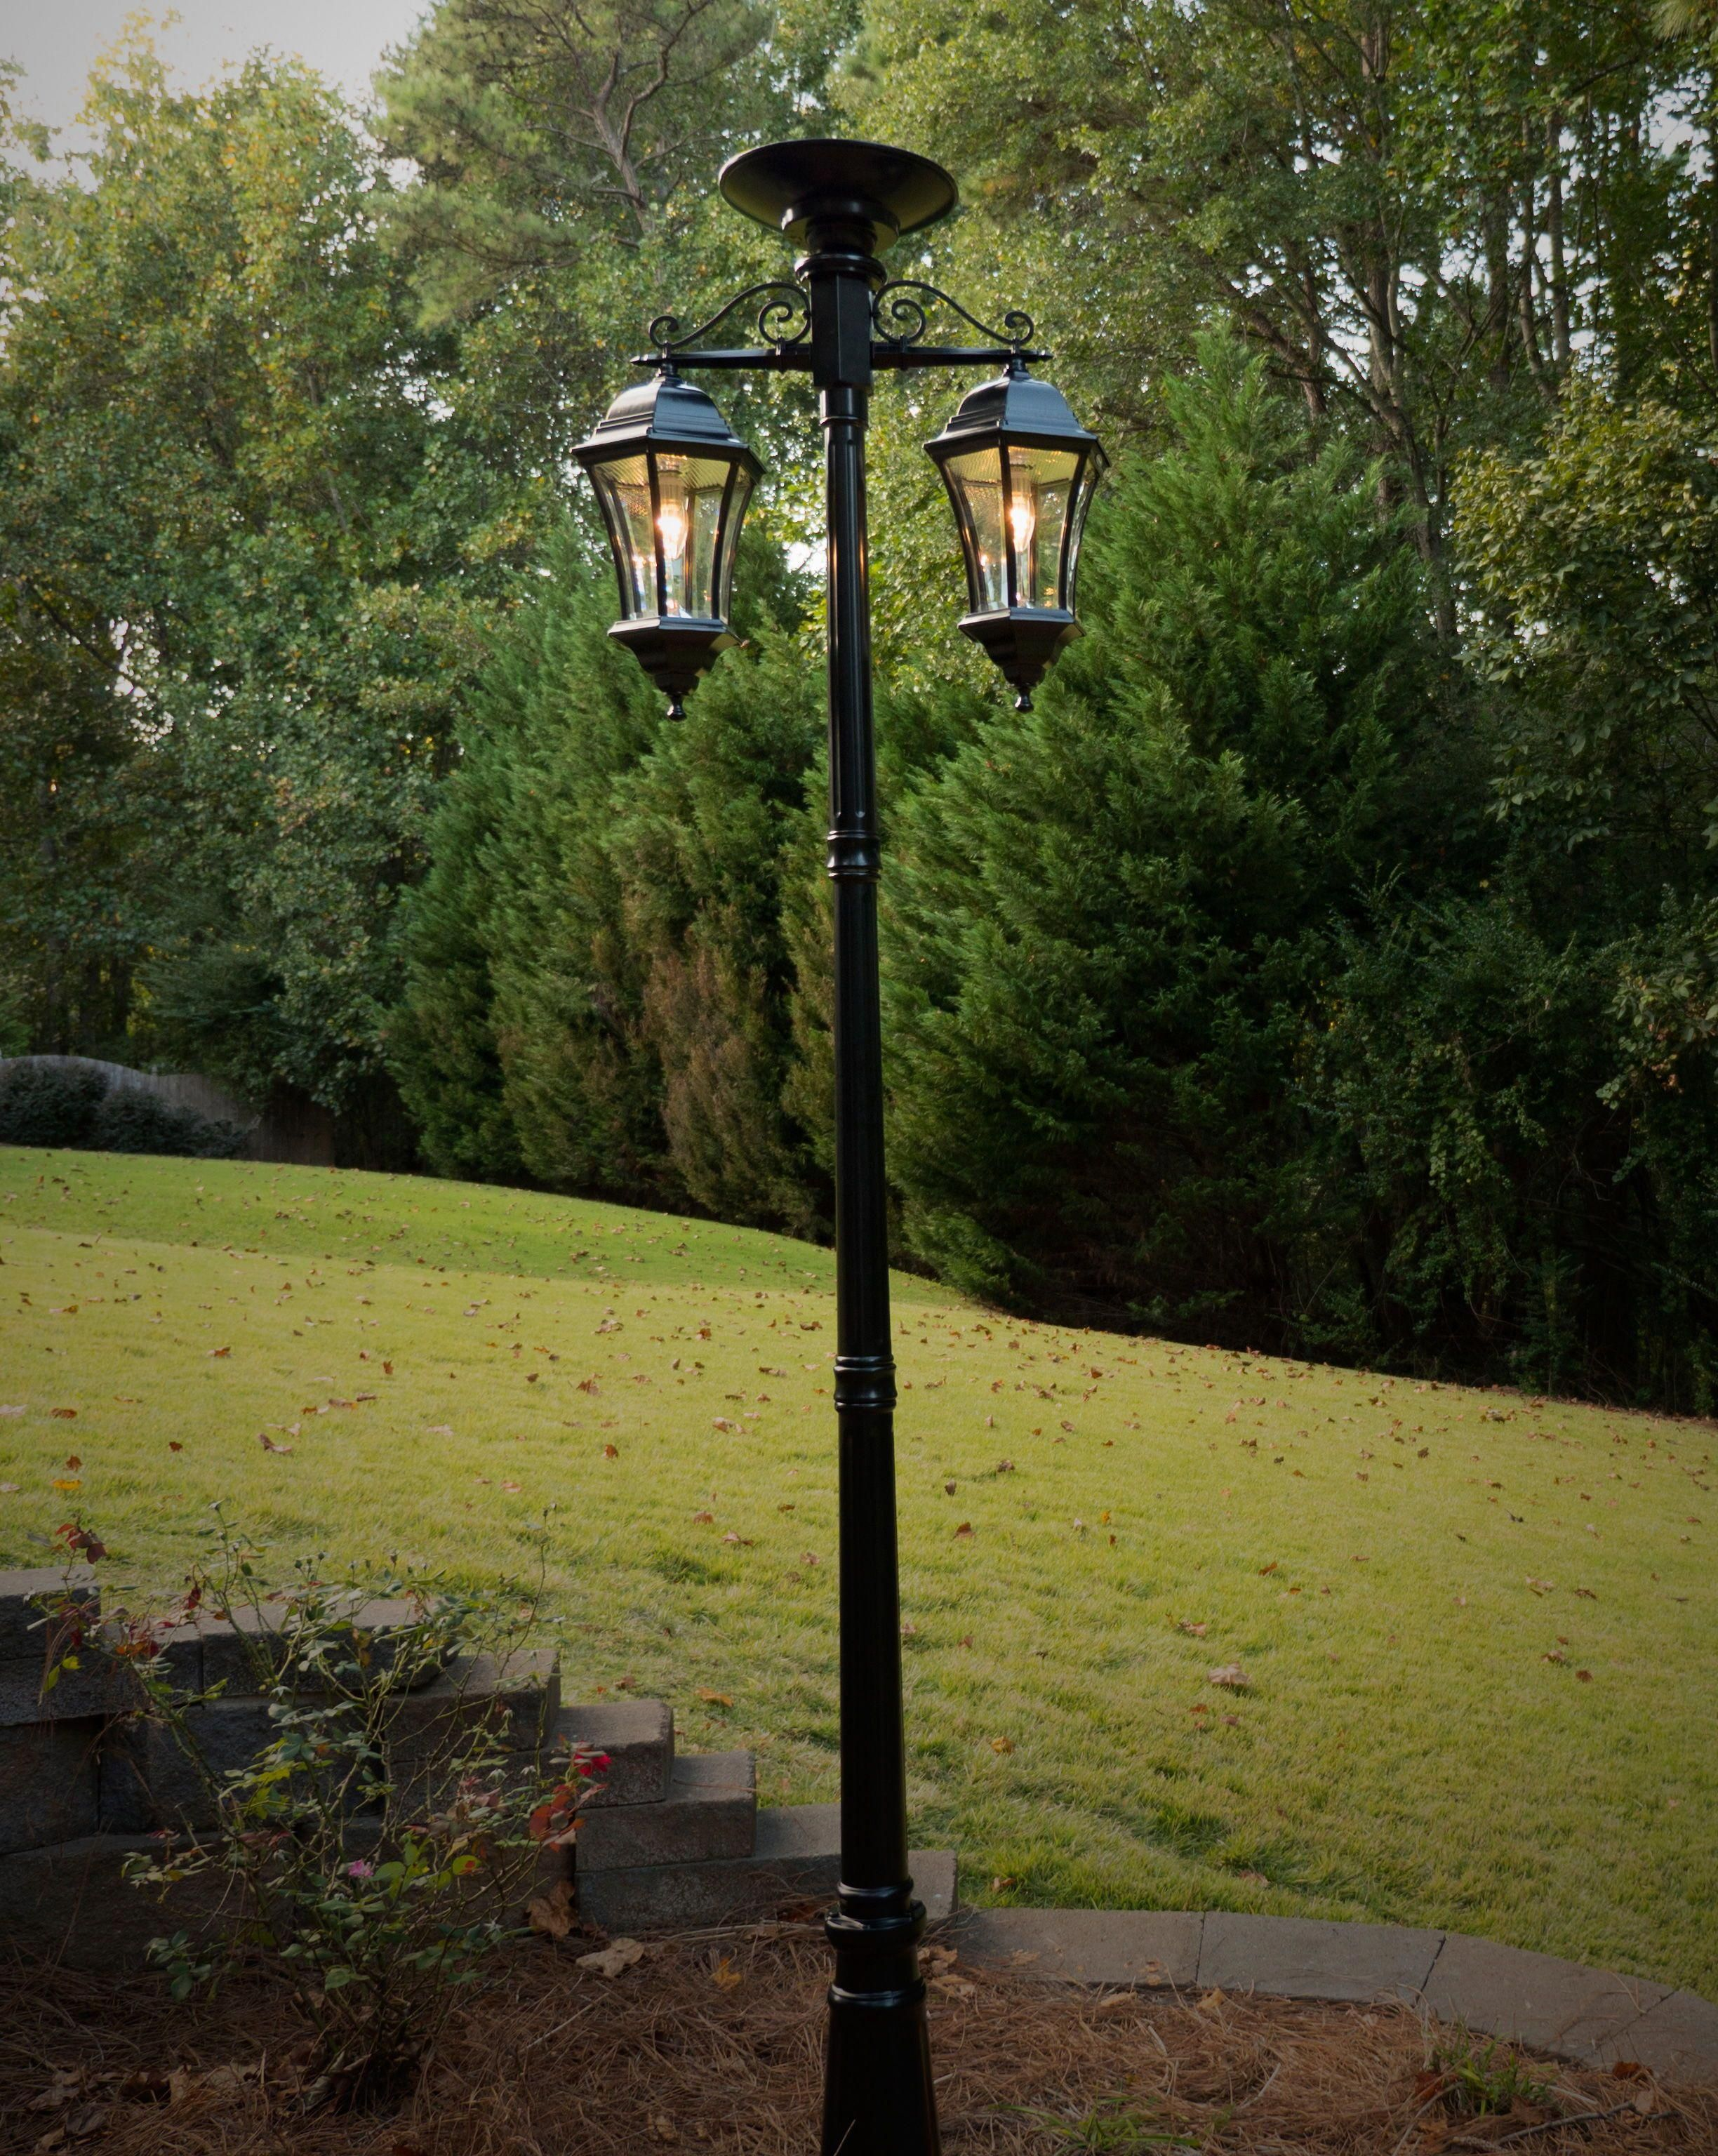 Landscape Outdoor Lighting Ideas For Your Garden Or Your Porch Backyard 3641528944 Outdoorlightinglandscape Solar Lamp Post Outdoor Lamp Solar Powered Lamp